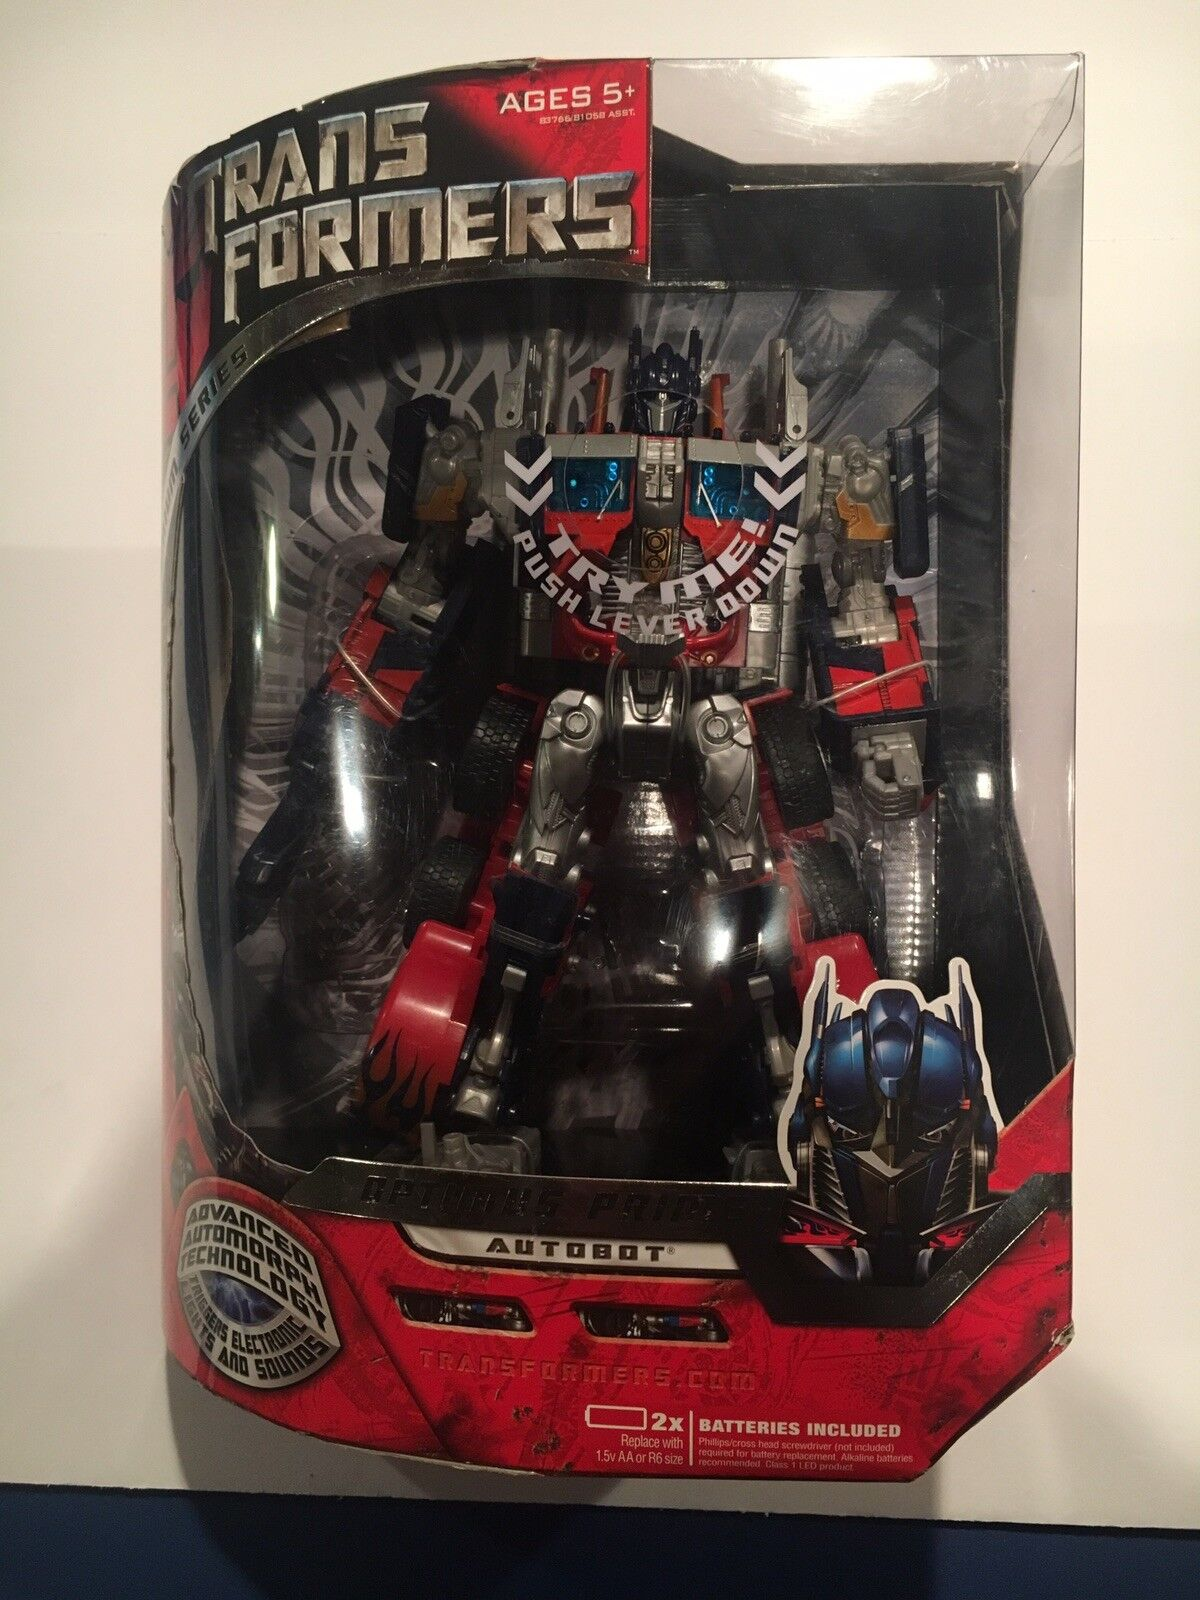 2007 TRANSFORMERS MOVIE OPTIMUS PRIME LEADER-Premium Series-Menthe en Boîte Scellée